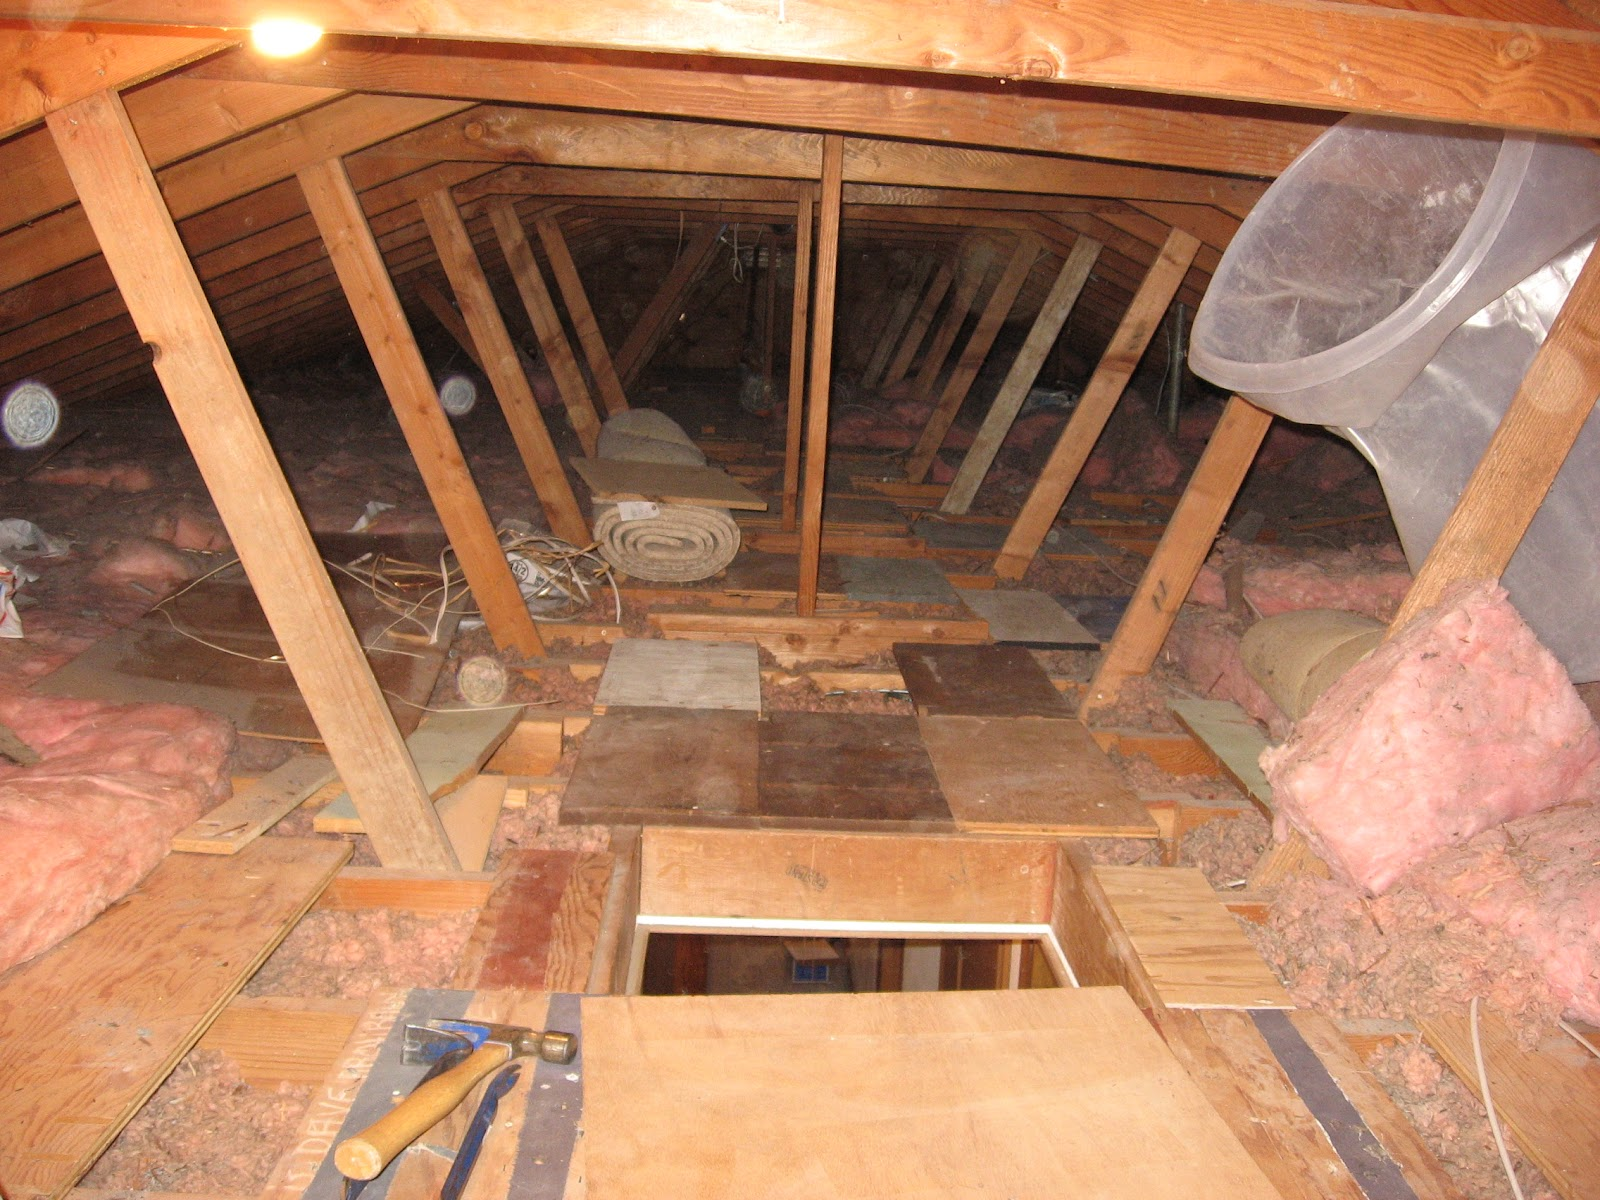 attic access   phillip norman attic access -